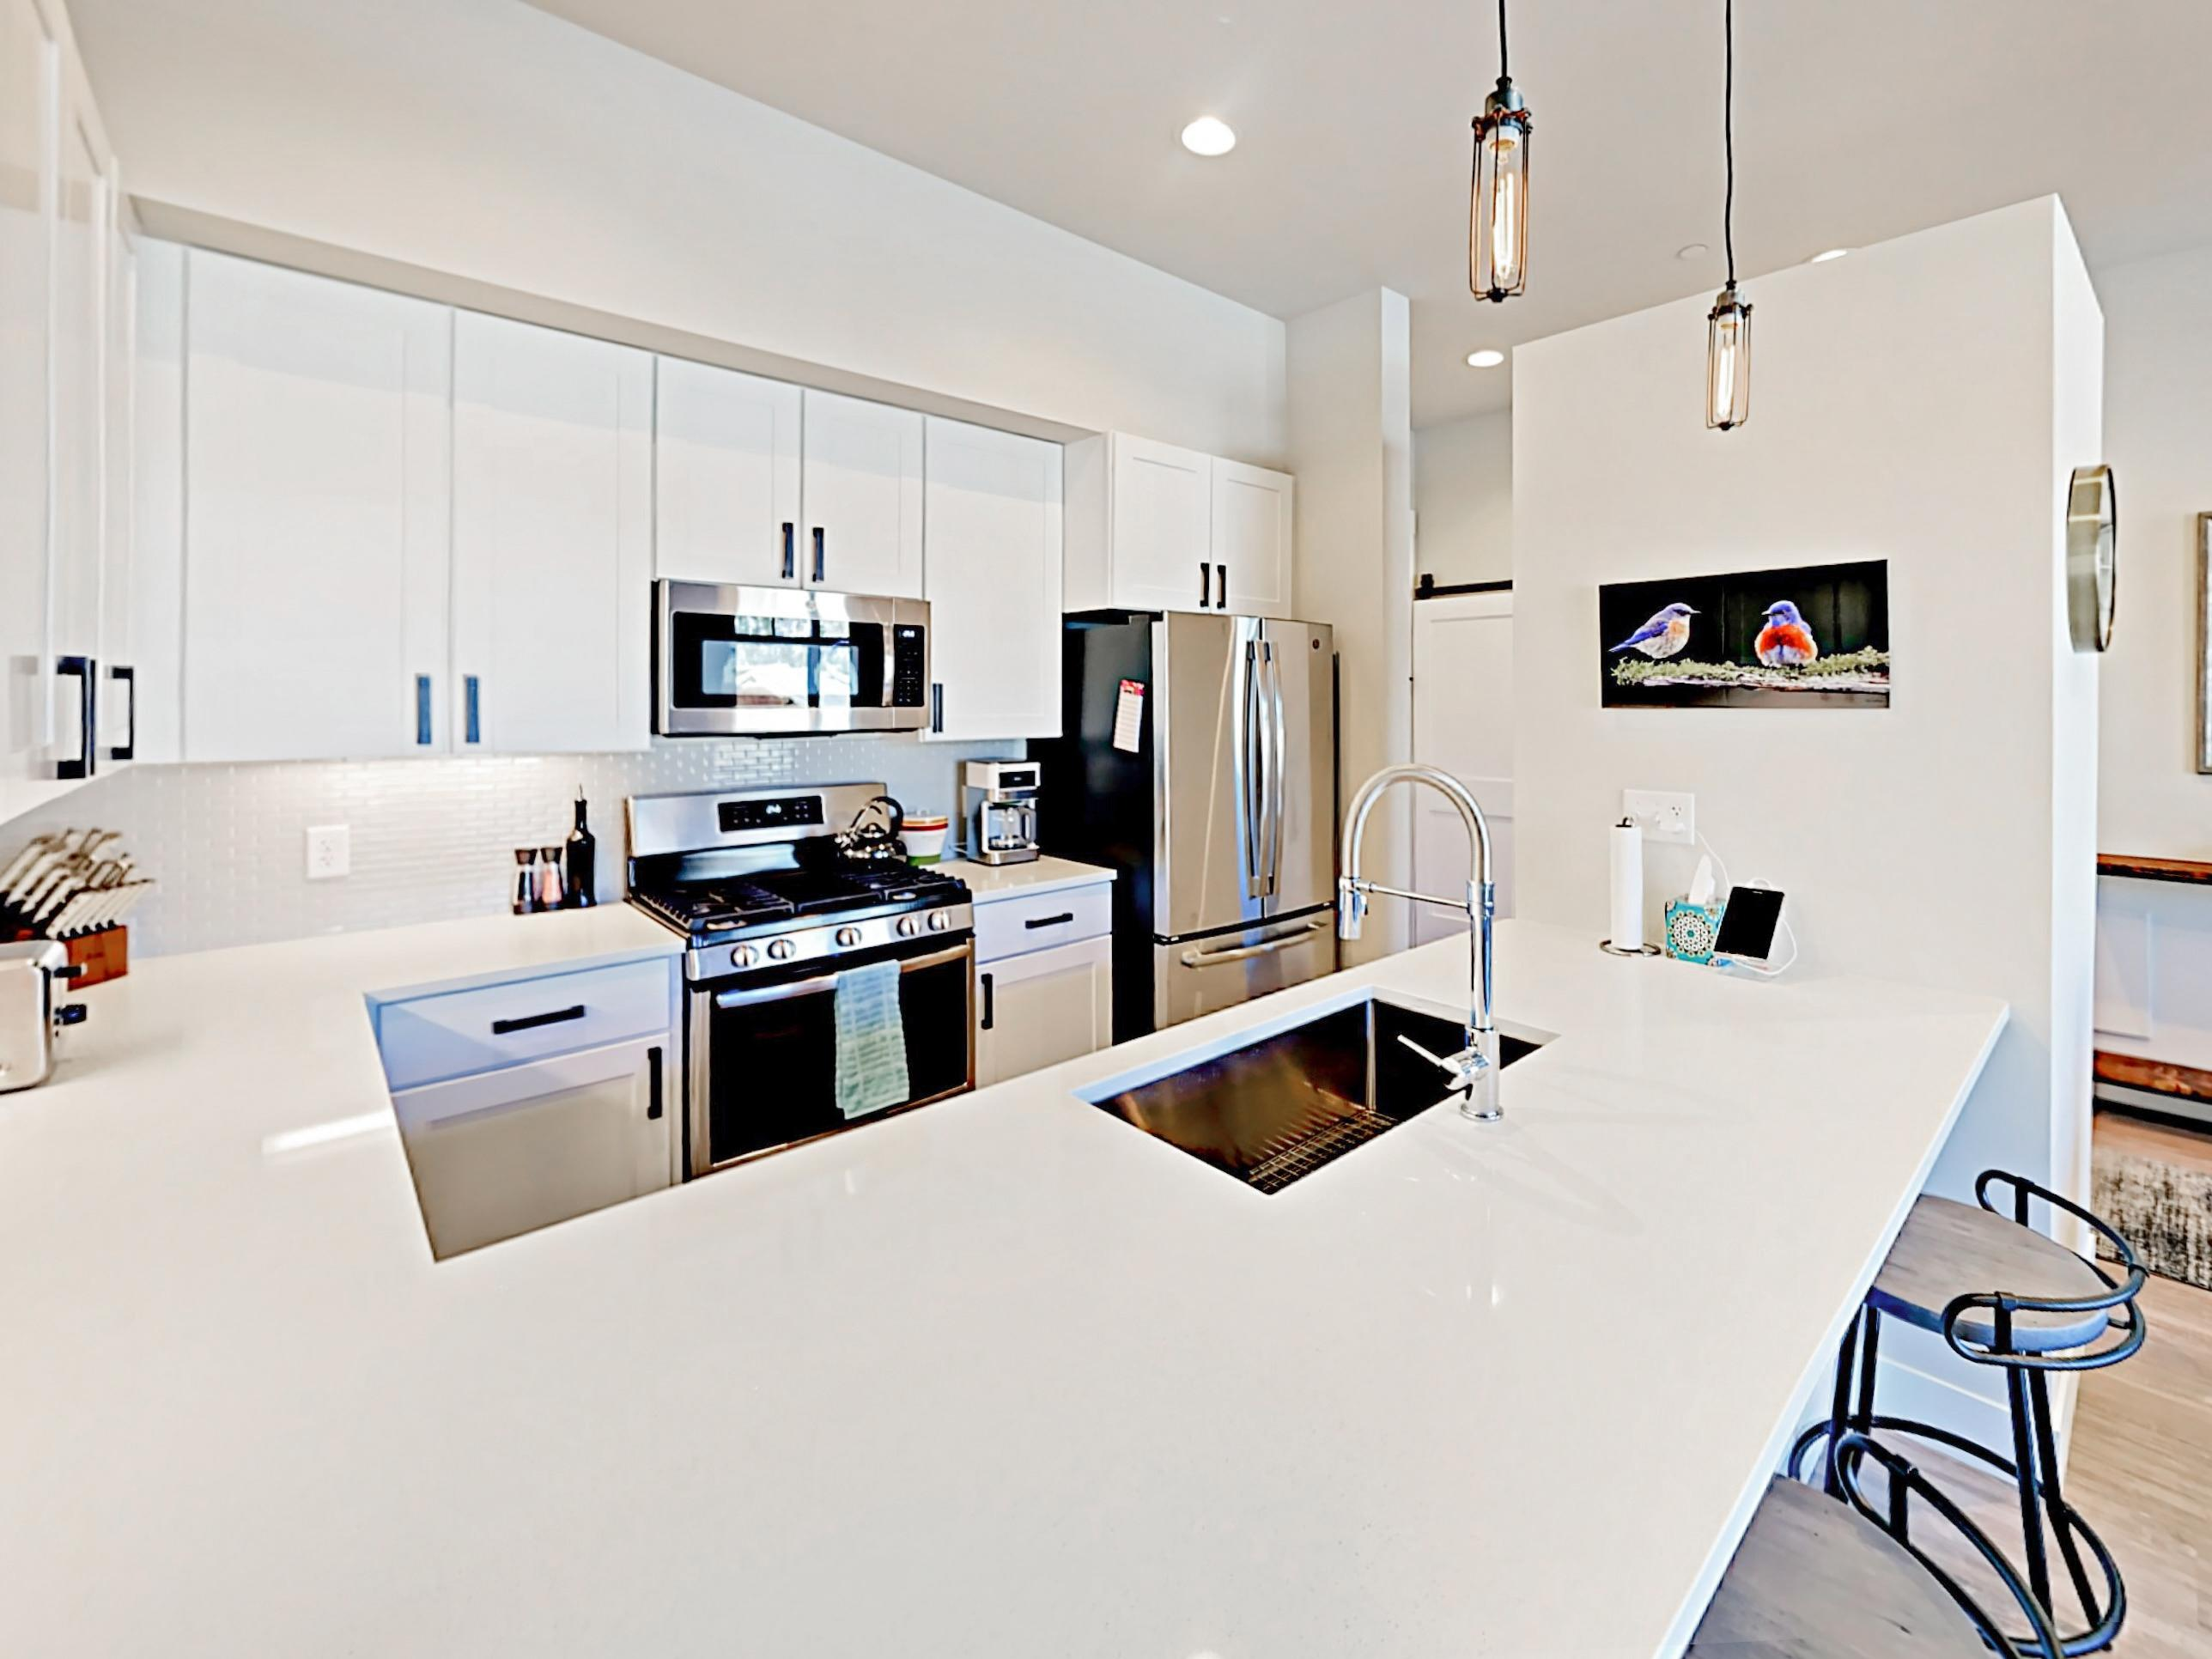 Gleaming white quartz countertops offer plenty of prep space in the kitchen.